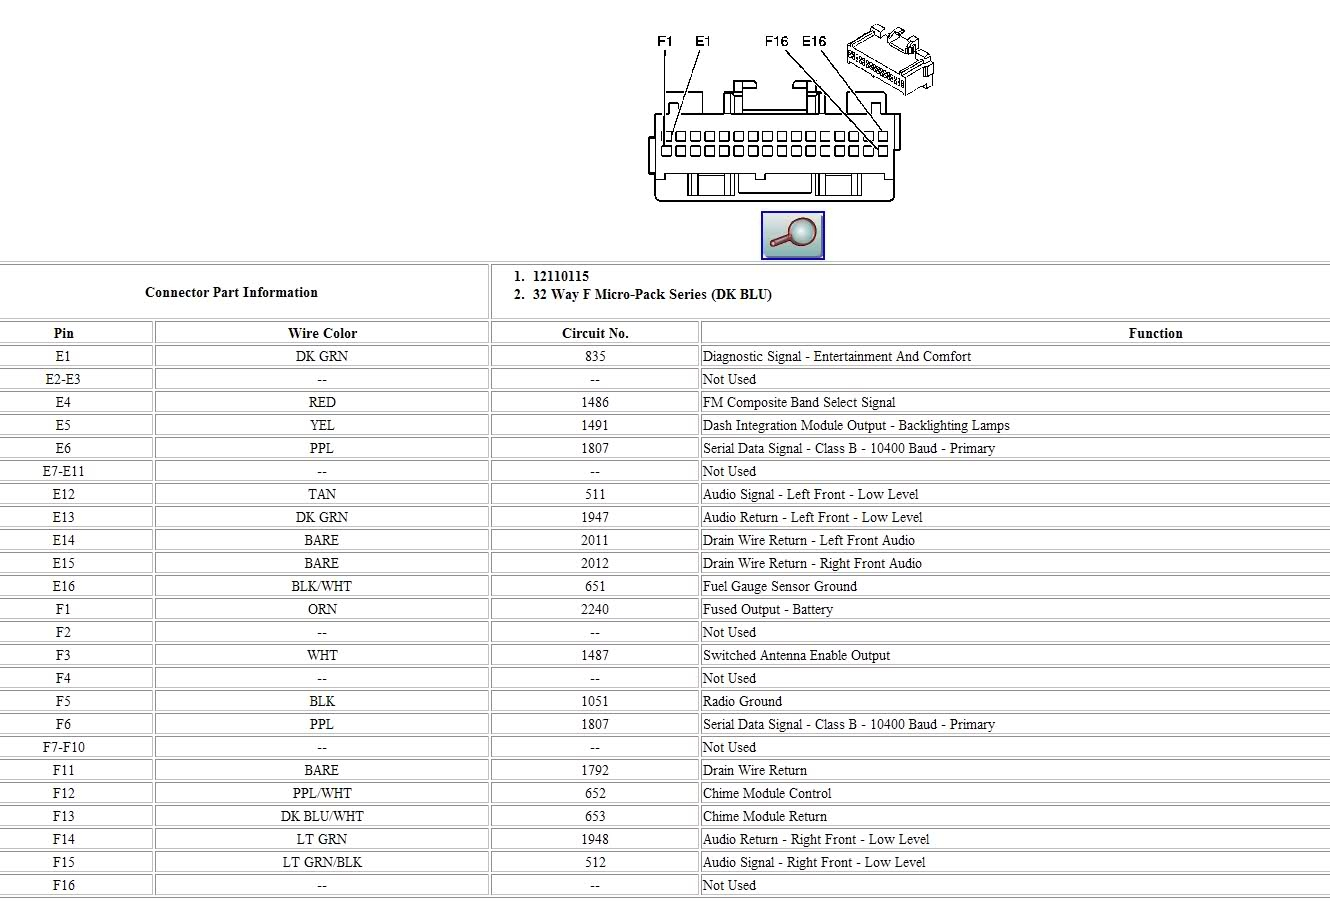 2002 cadillac deville factory amp wiring diagram Download-2002 cadillac deville factory and wiring diagram Collection 2011 Chevy Silverado Radio Wiring Diagram New 18-c